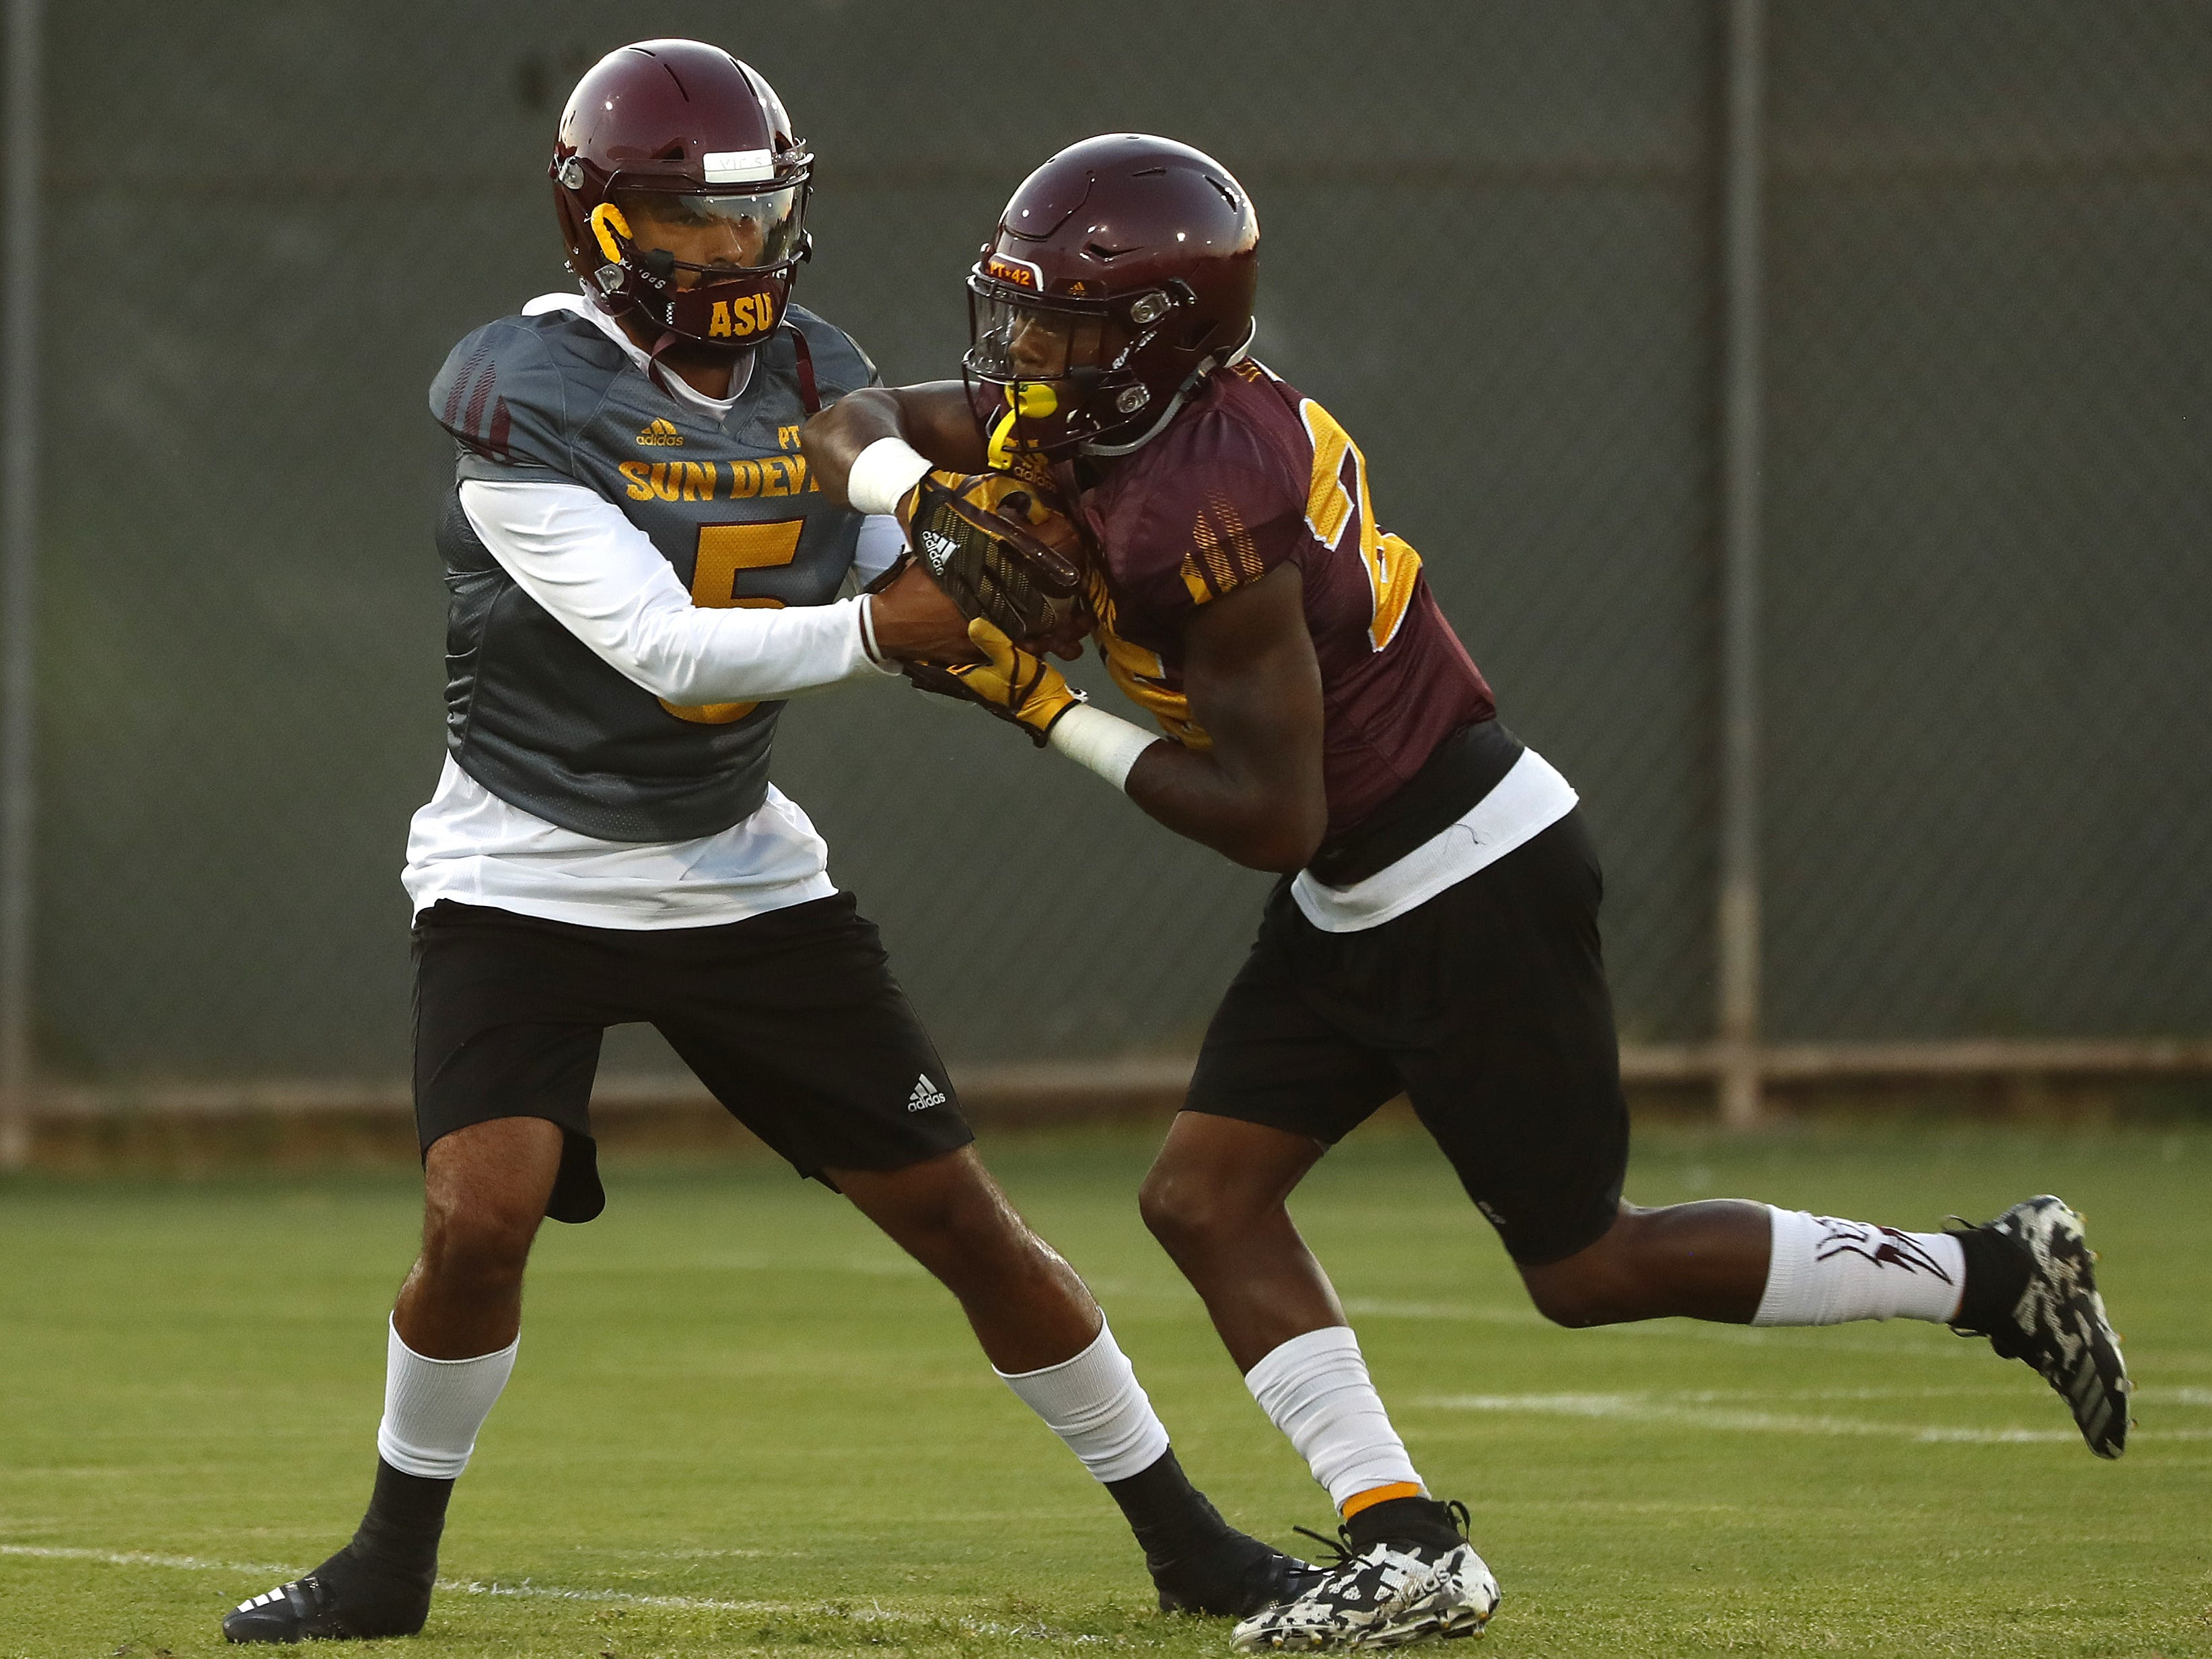 ASU's Manny Wilkins (5) fakes a hand-off to Trelon Smith (25) during a practice at Kajikawa Football Practice Fields in Tempe, Ariz. on Aug. 6, 2018.